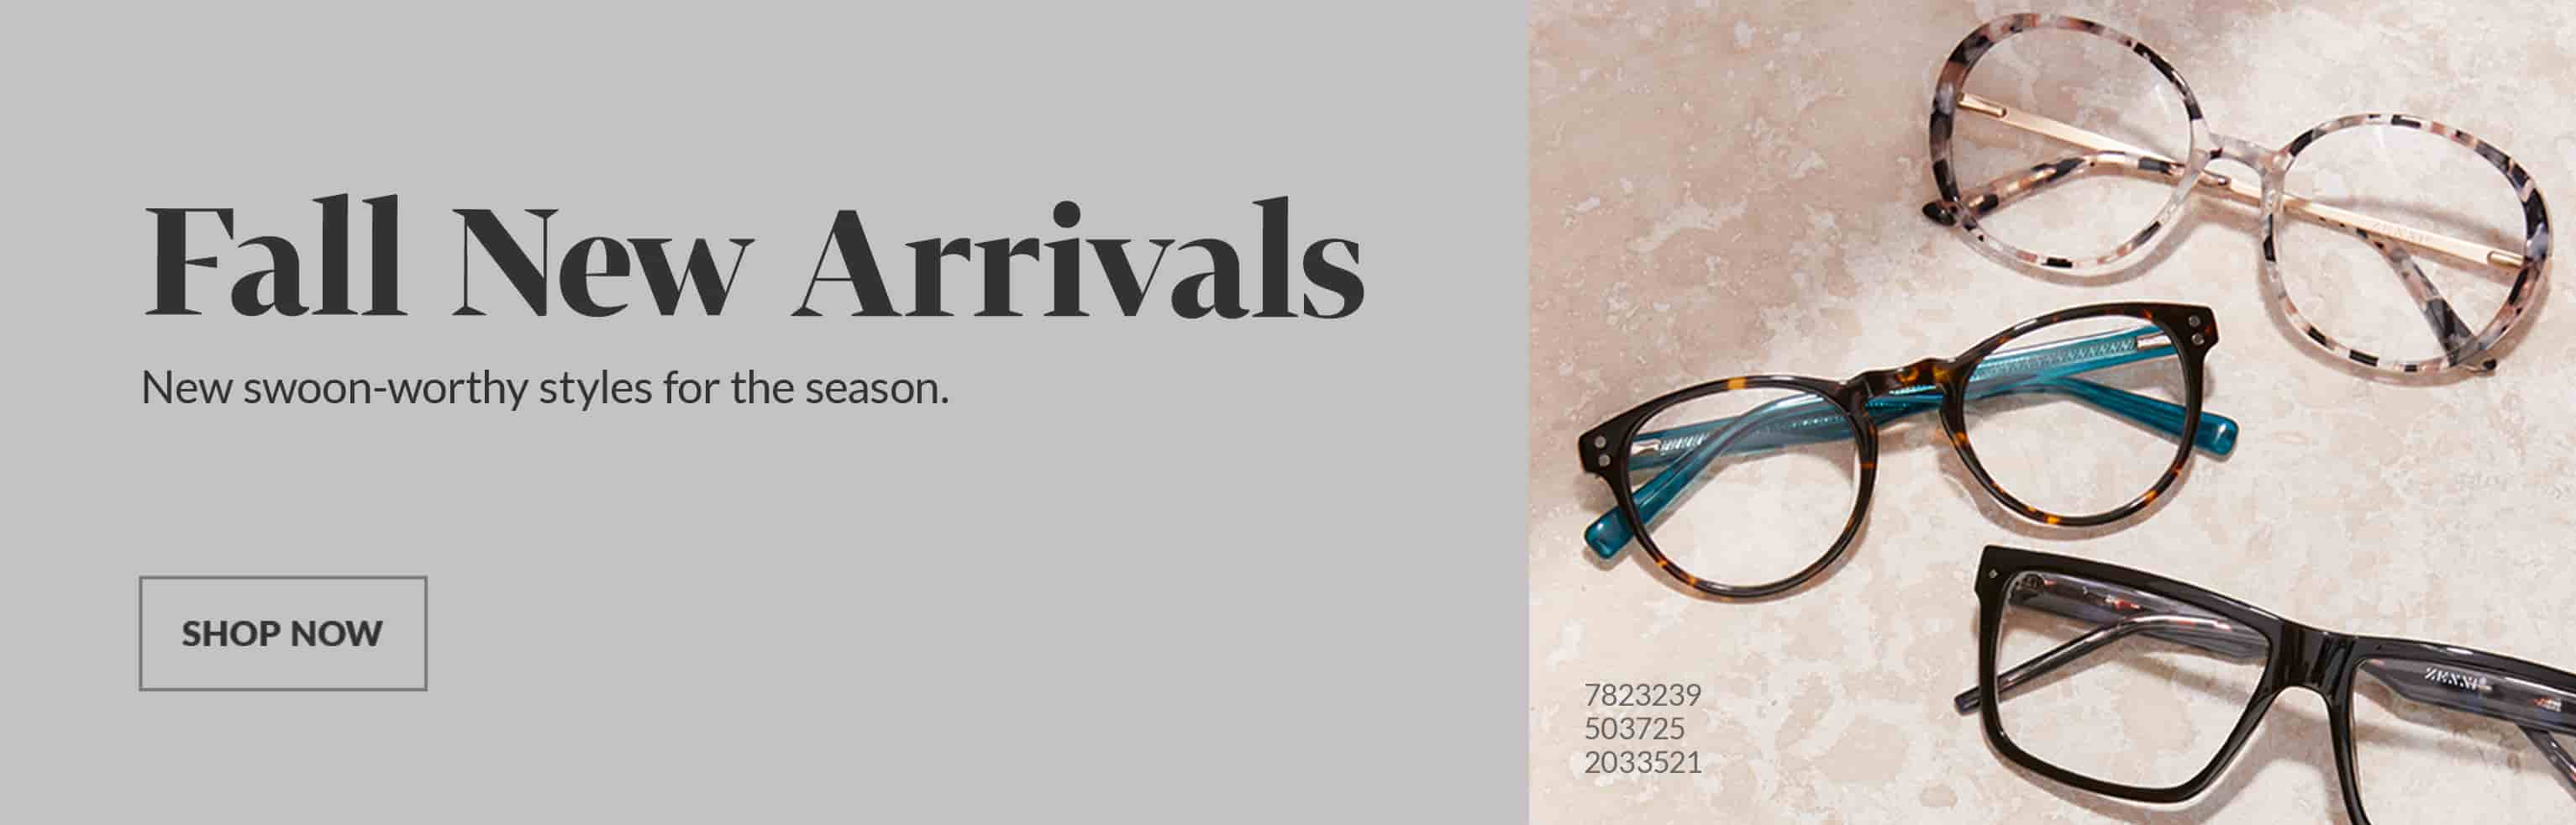 New arrivals. The fall five. New swoon-worthy styles for the season. Shop now. Image of Zenni flat top glasses #2033521, Zenni rectangle glasses #7825412, Zenni oval glasses #7823239, Zenni round magnetic snap-on set #503725, and Zenni browline glasses #7824421 on a beige marble background.